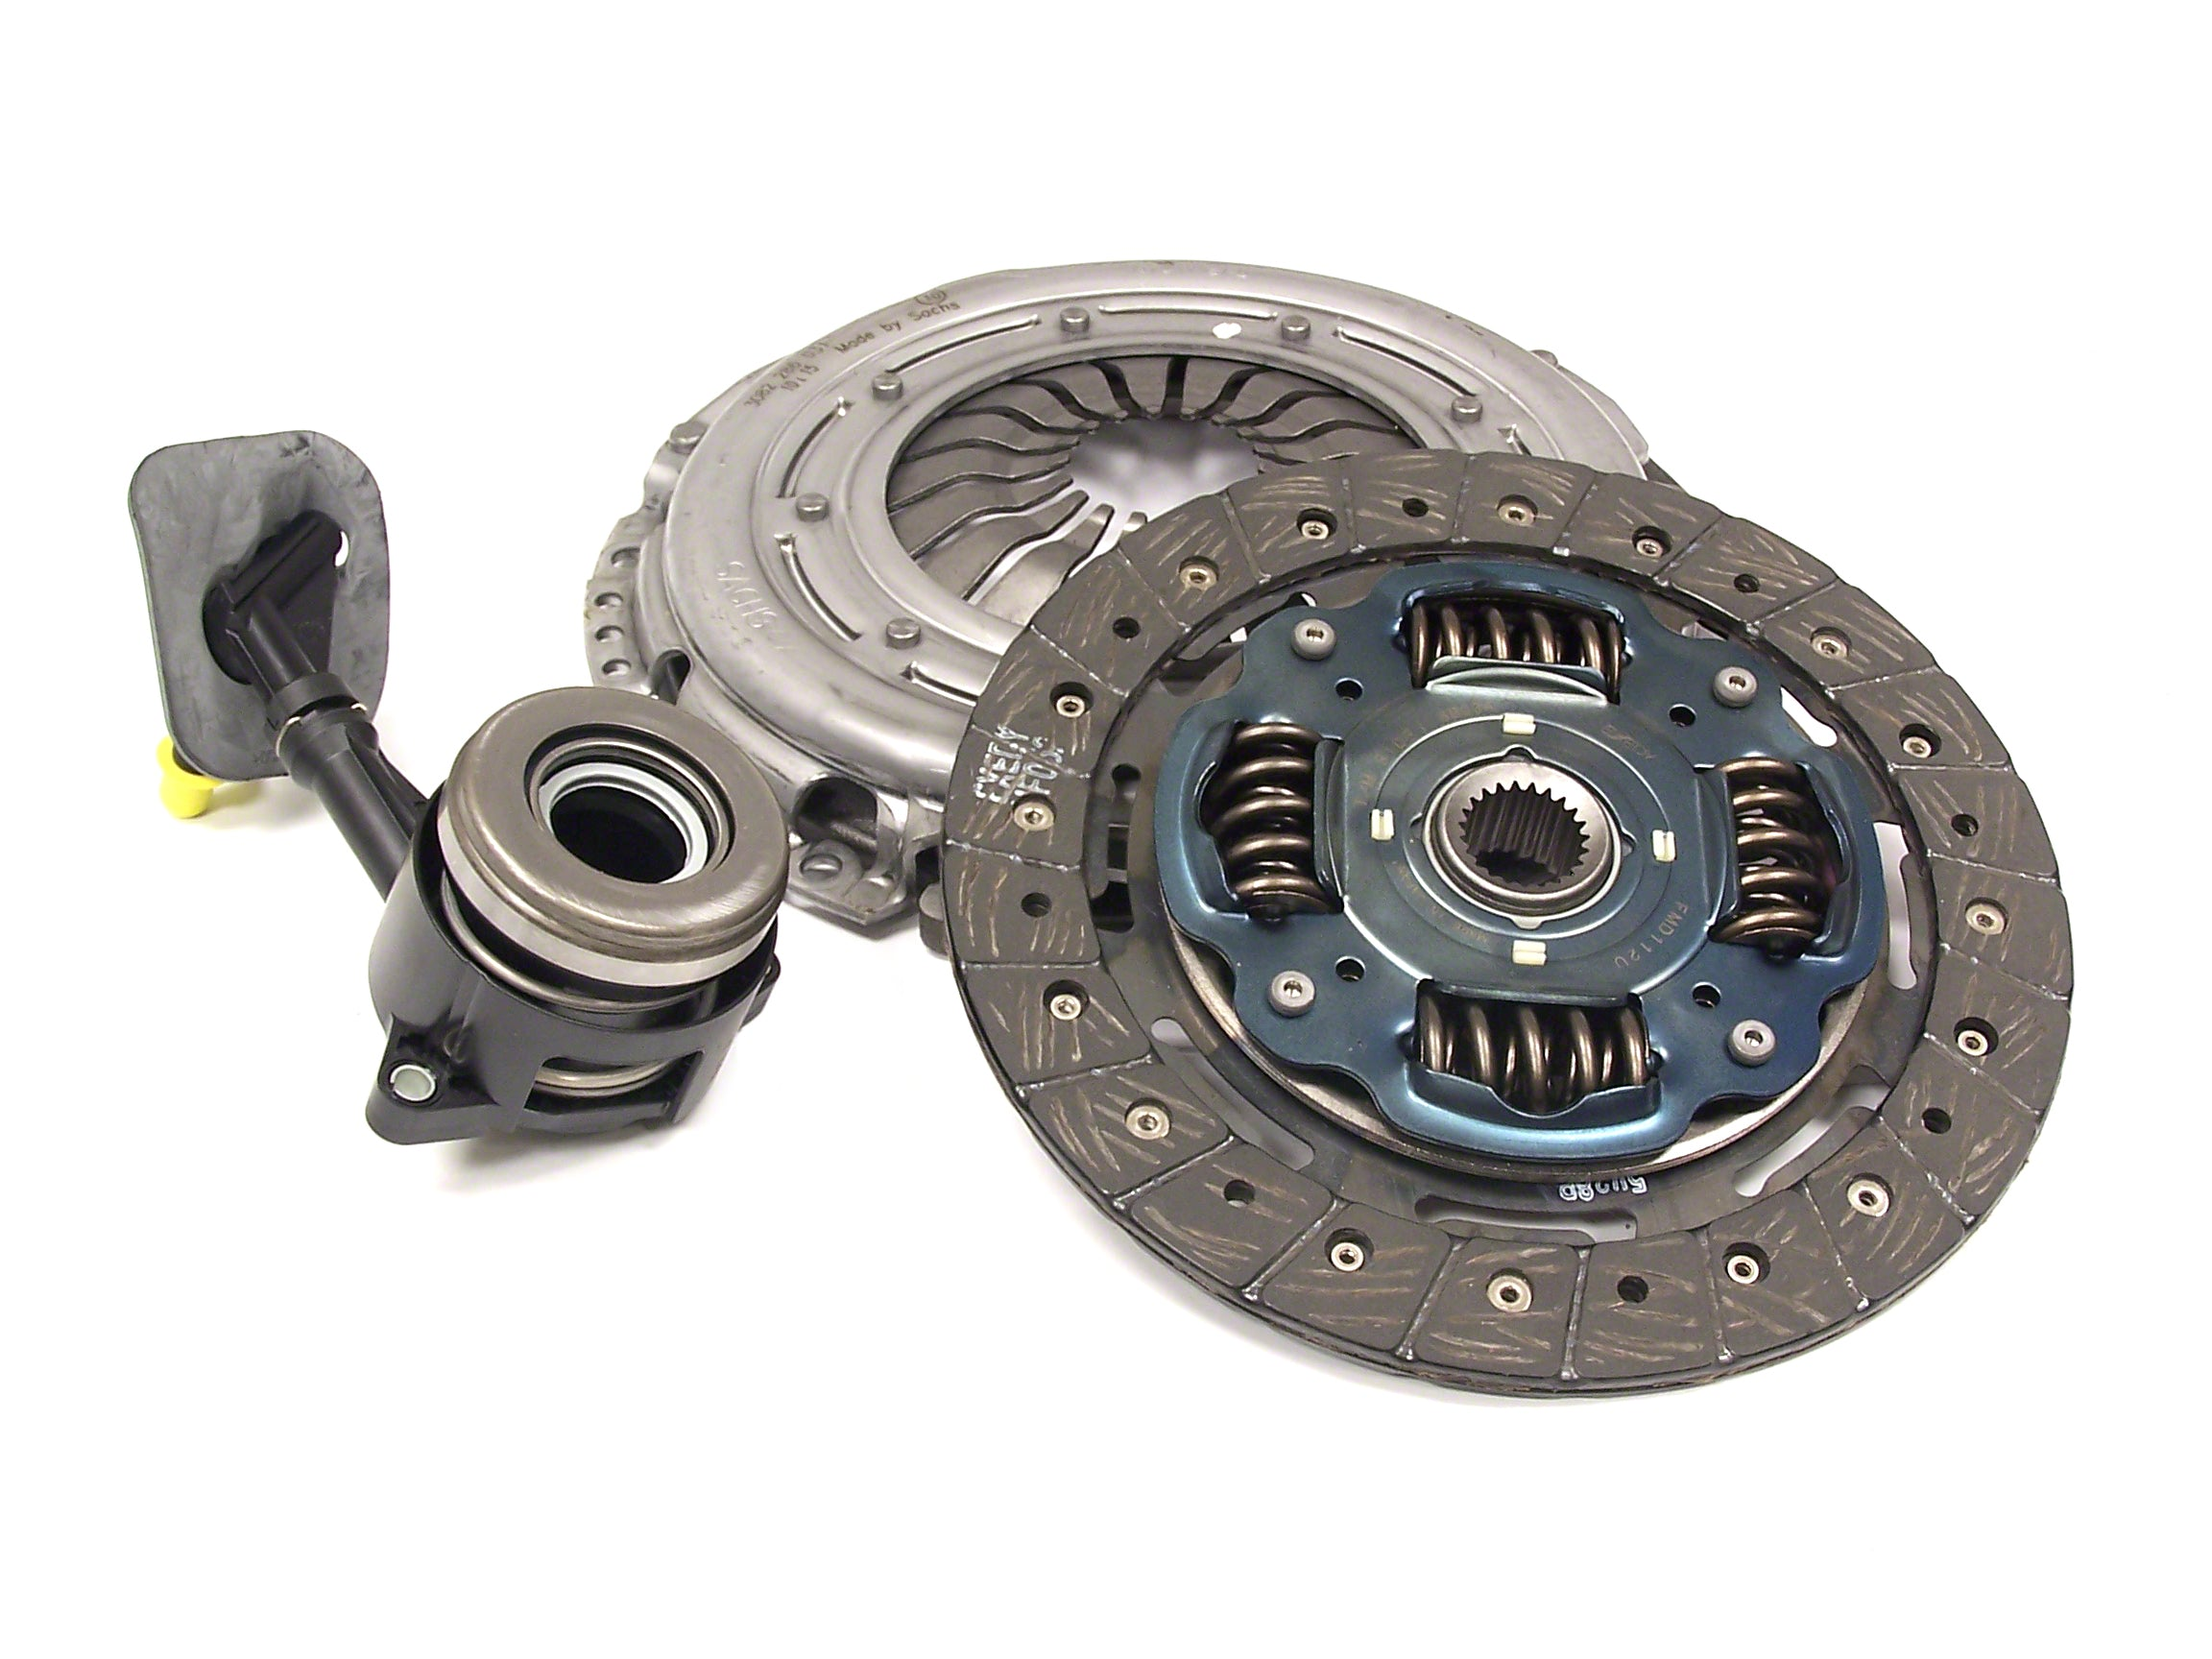 Oem Ford Transmission Clutch Plate Auto Trans Clutch Plate /'00-13 Transit Focus*